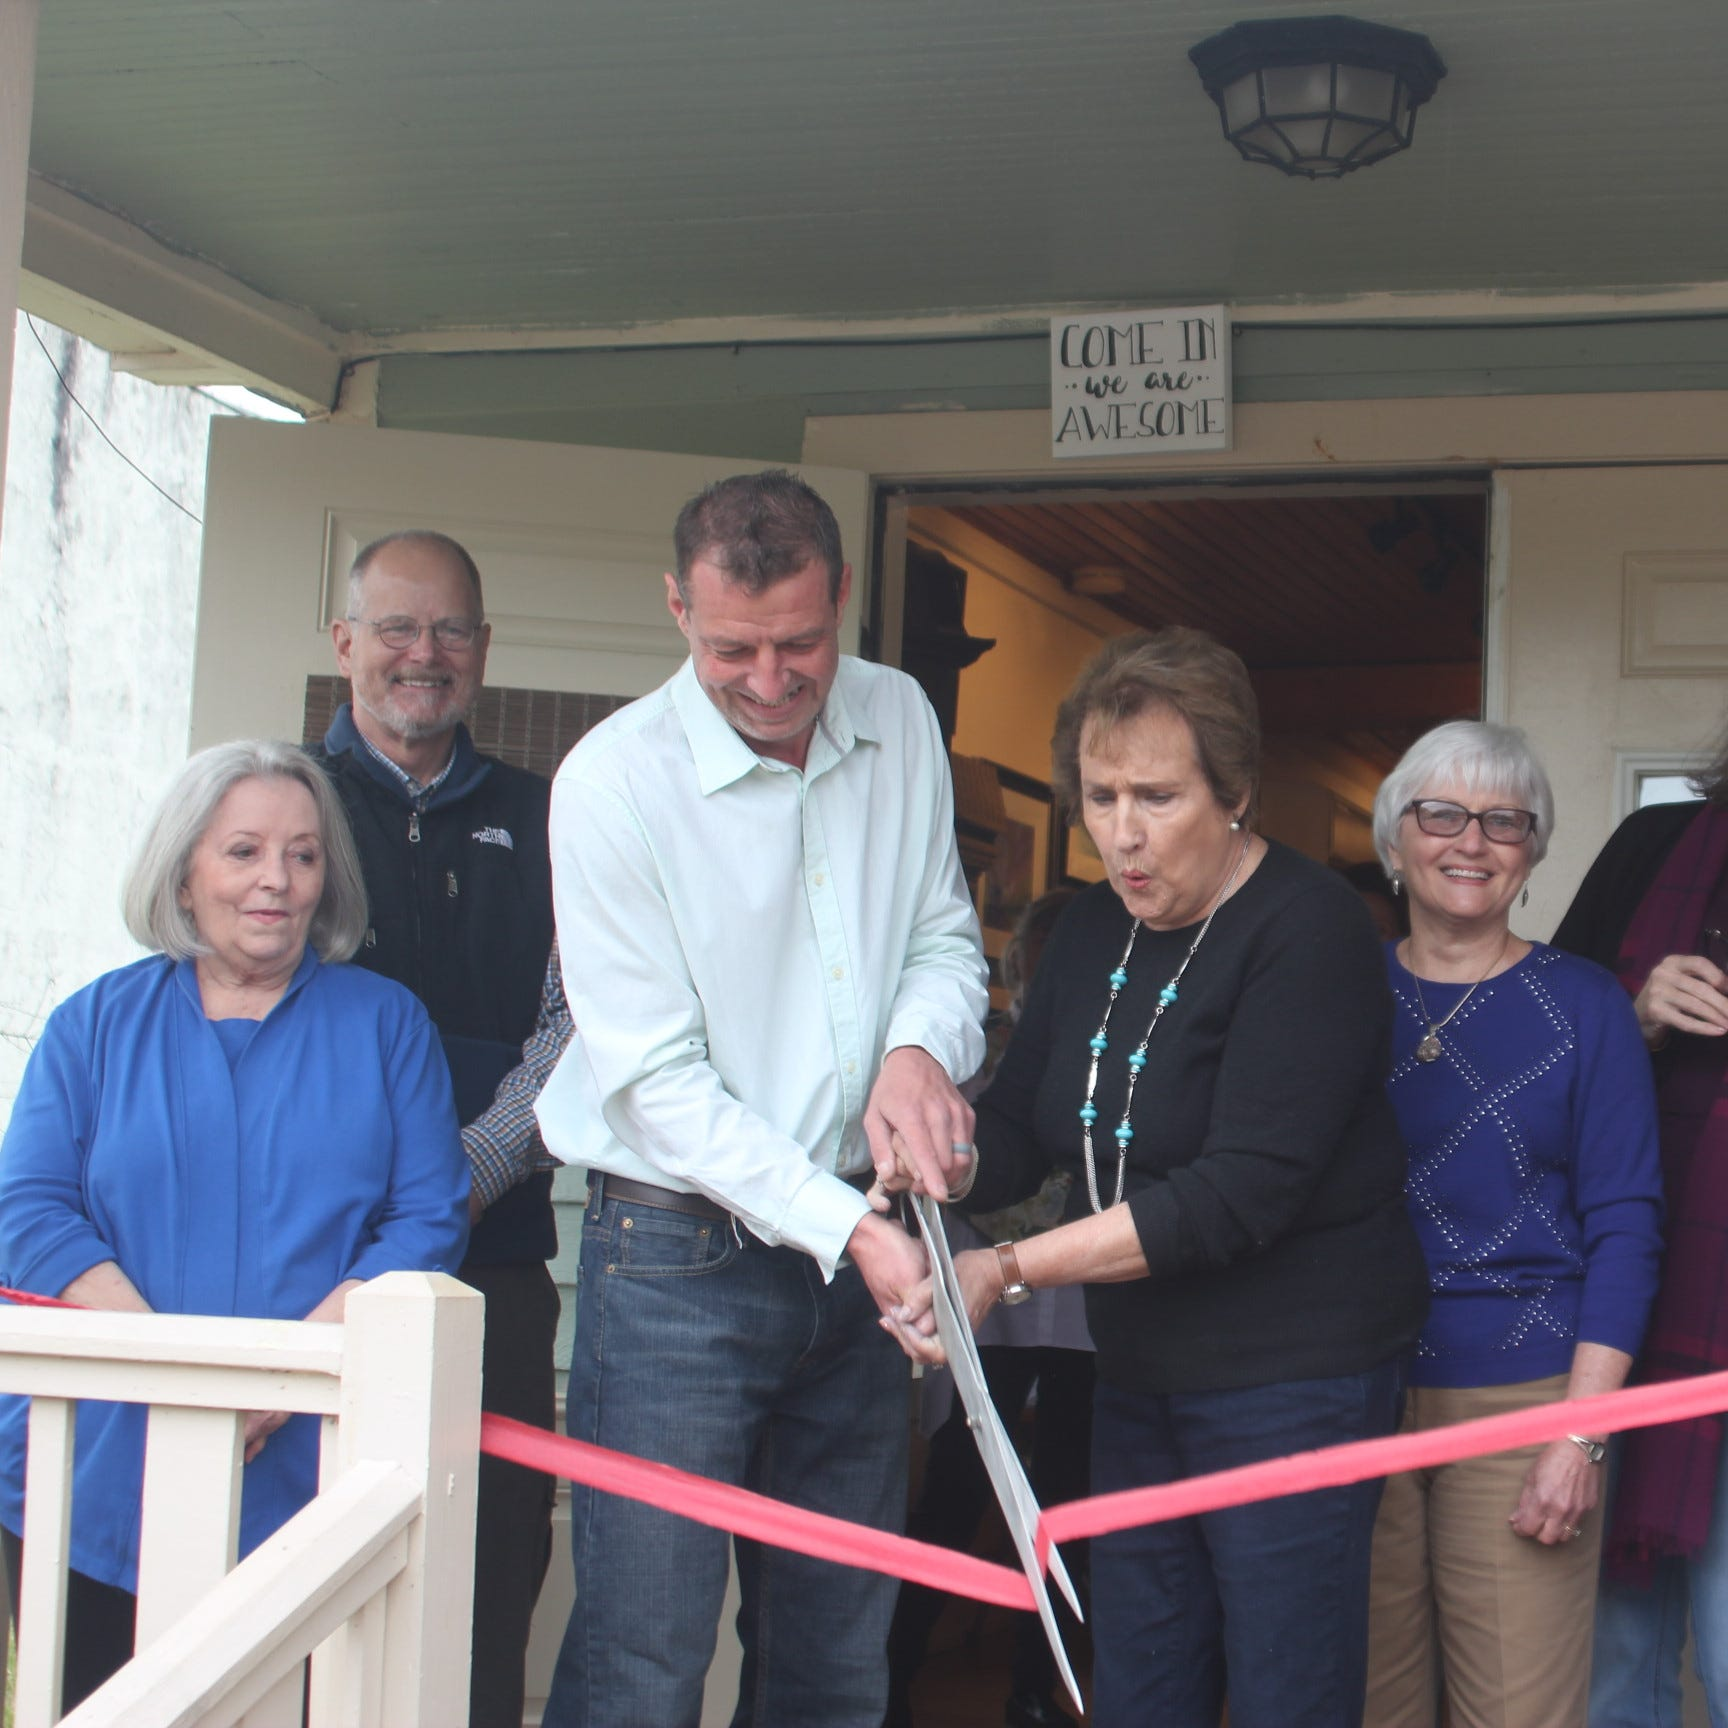 Art gallery opens in Cotter